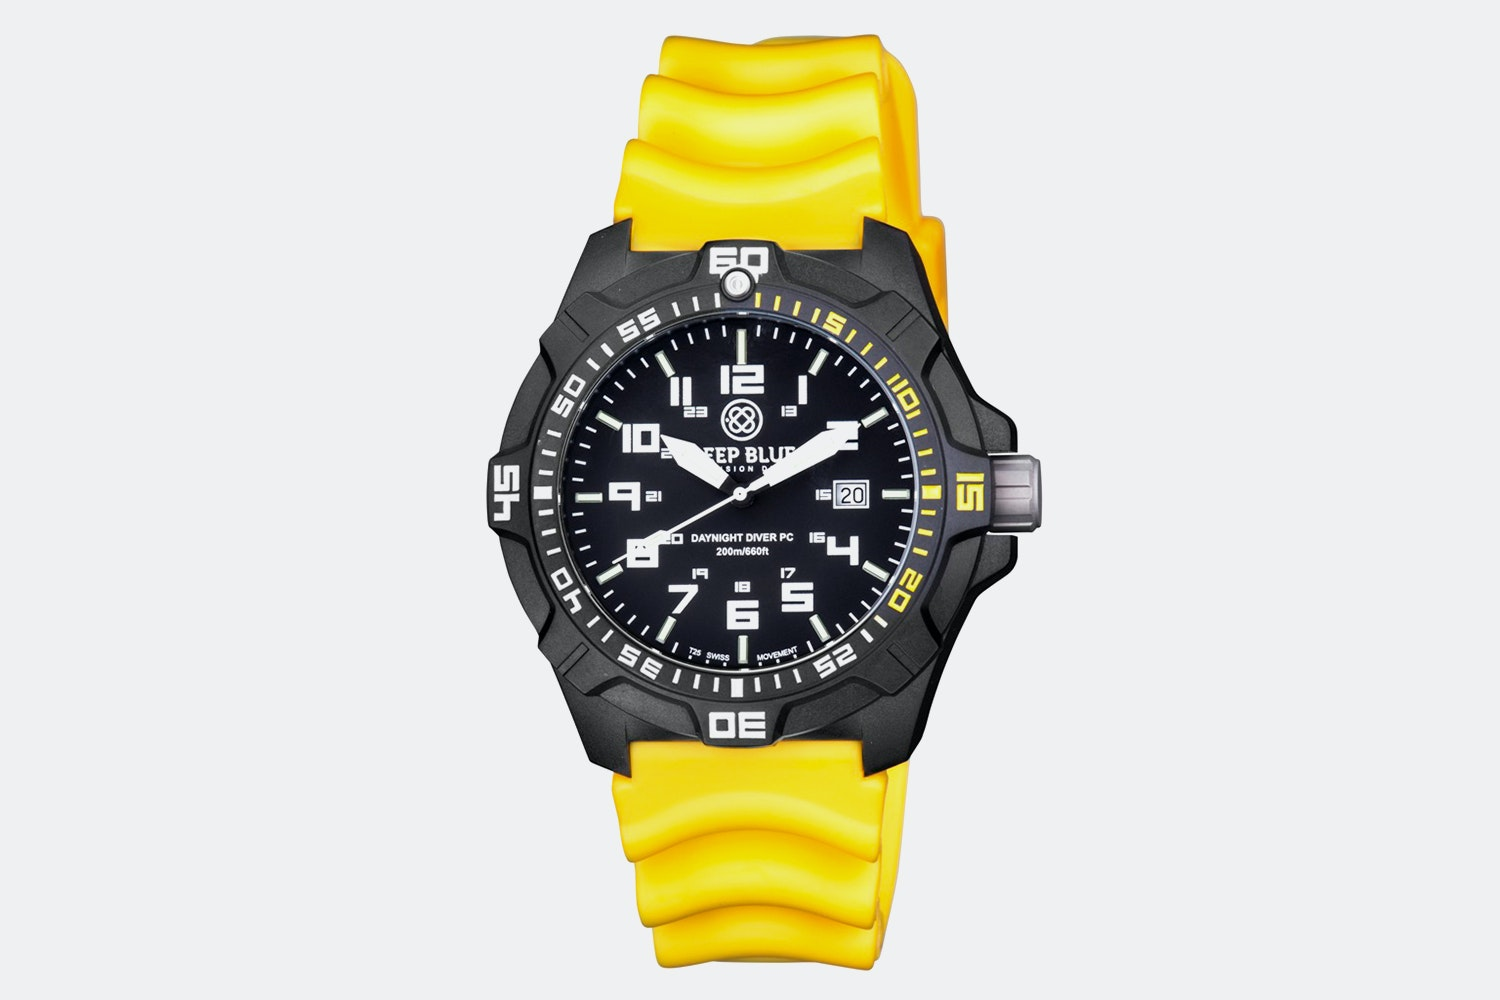 Yellow accents, yellow strap